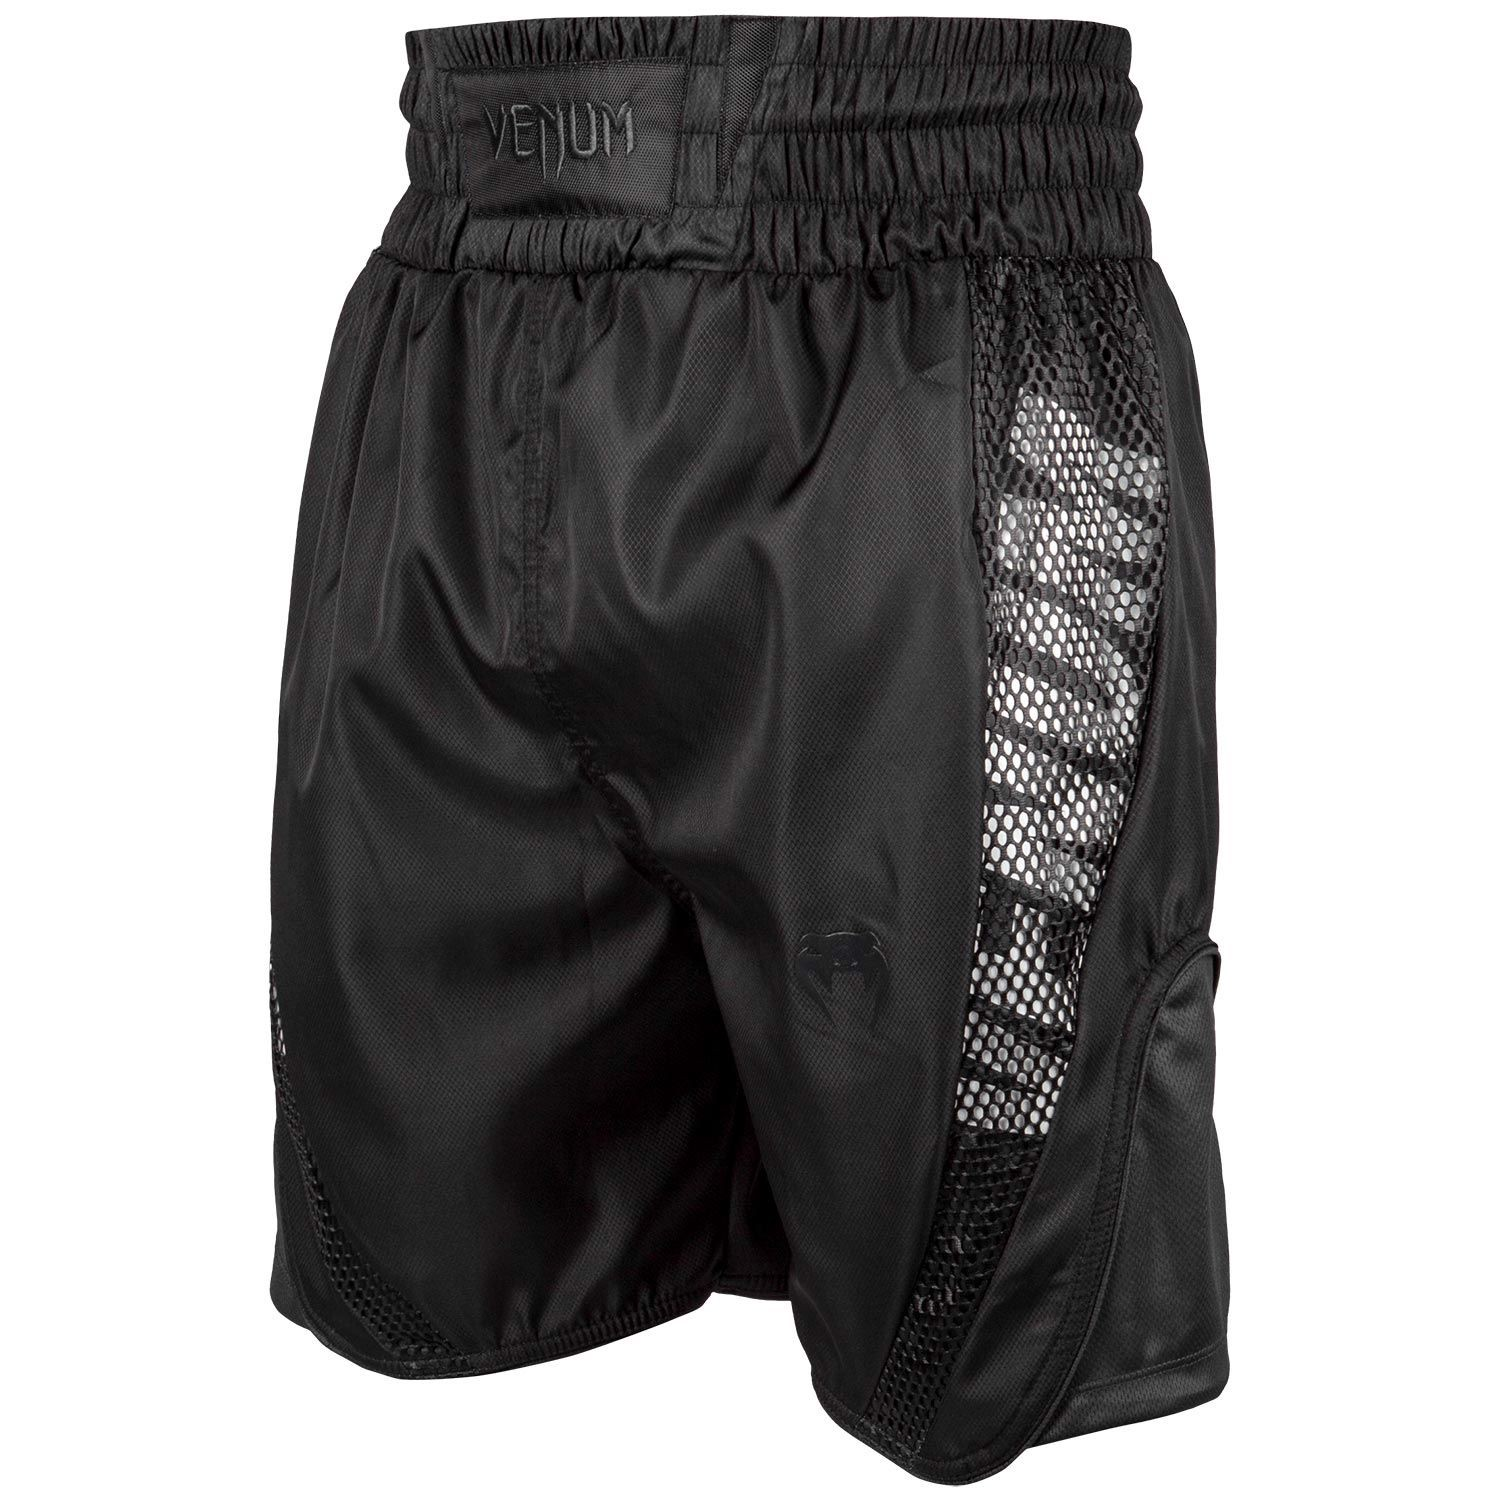 Quần Venum Elite Boxing Shorts - Black/Black